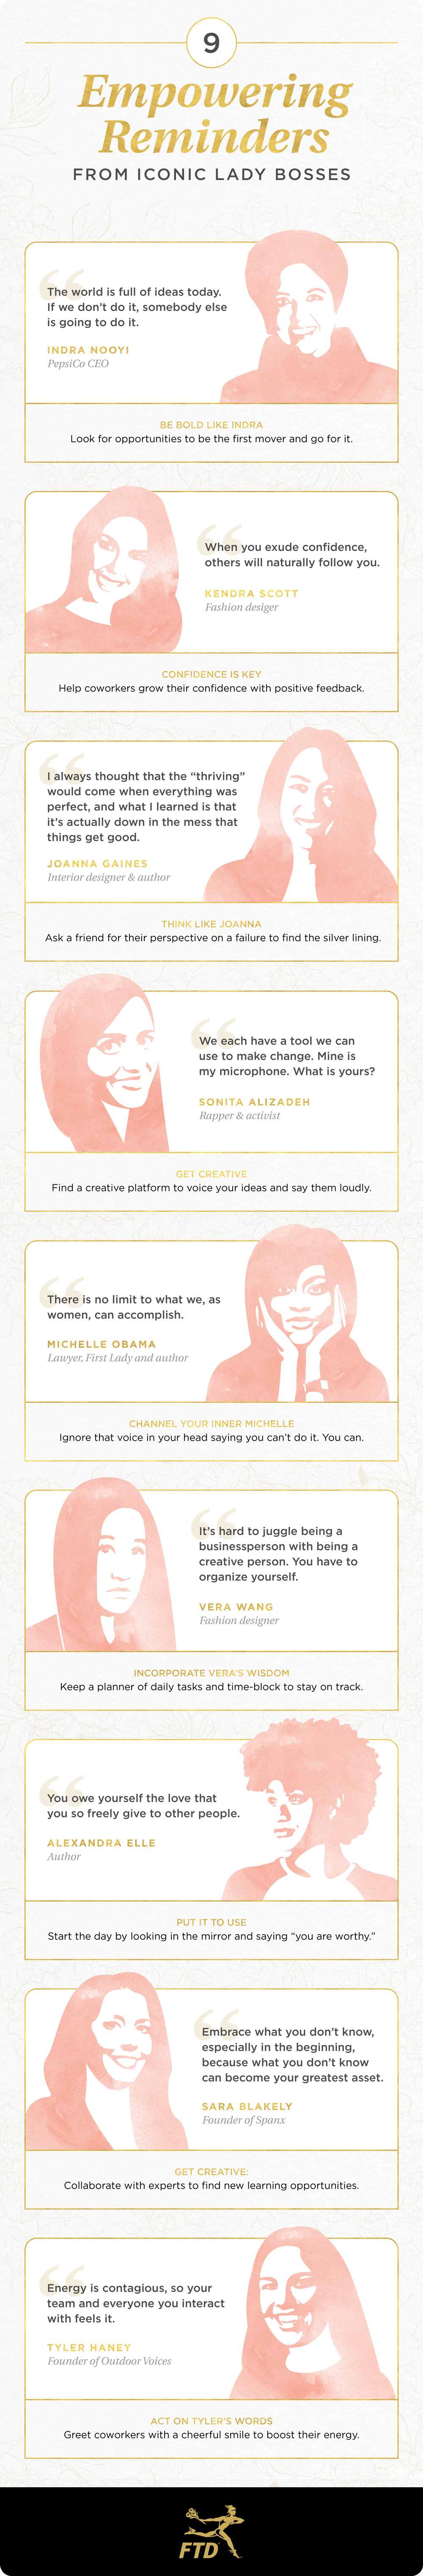 Incredible women in the workplace infographic